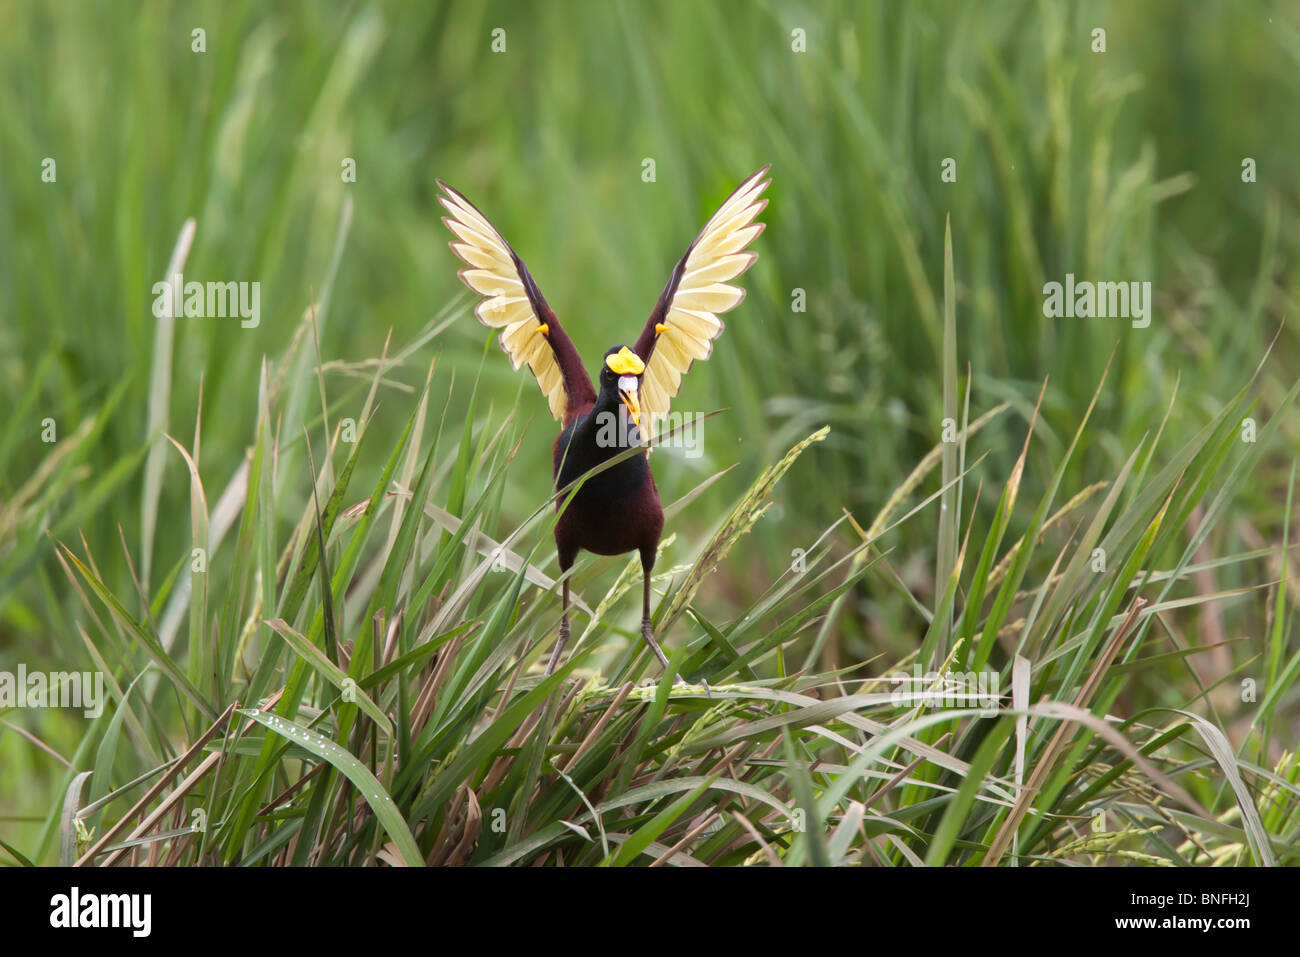 Northern Jacana Adult doing wing diaplay after landing. Note yellow spurs on wings. - Stock Image